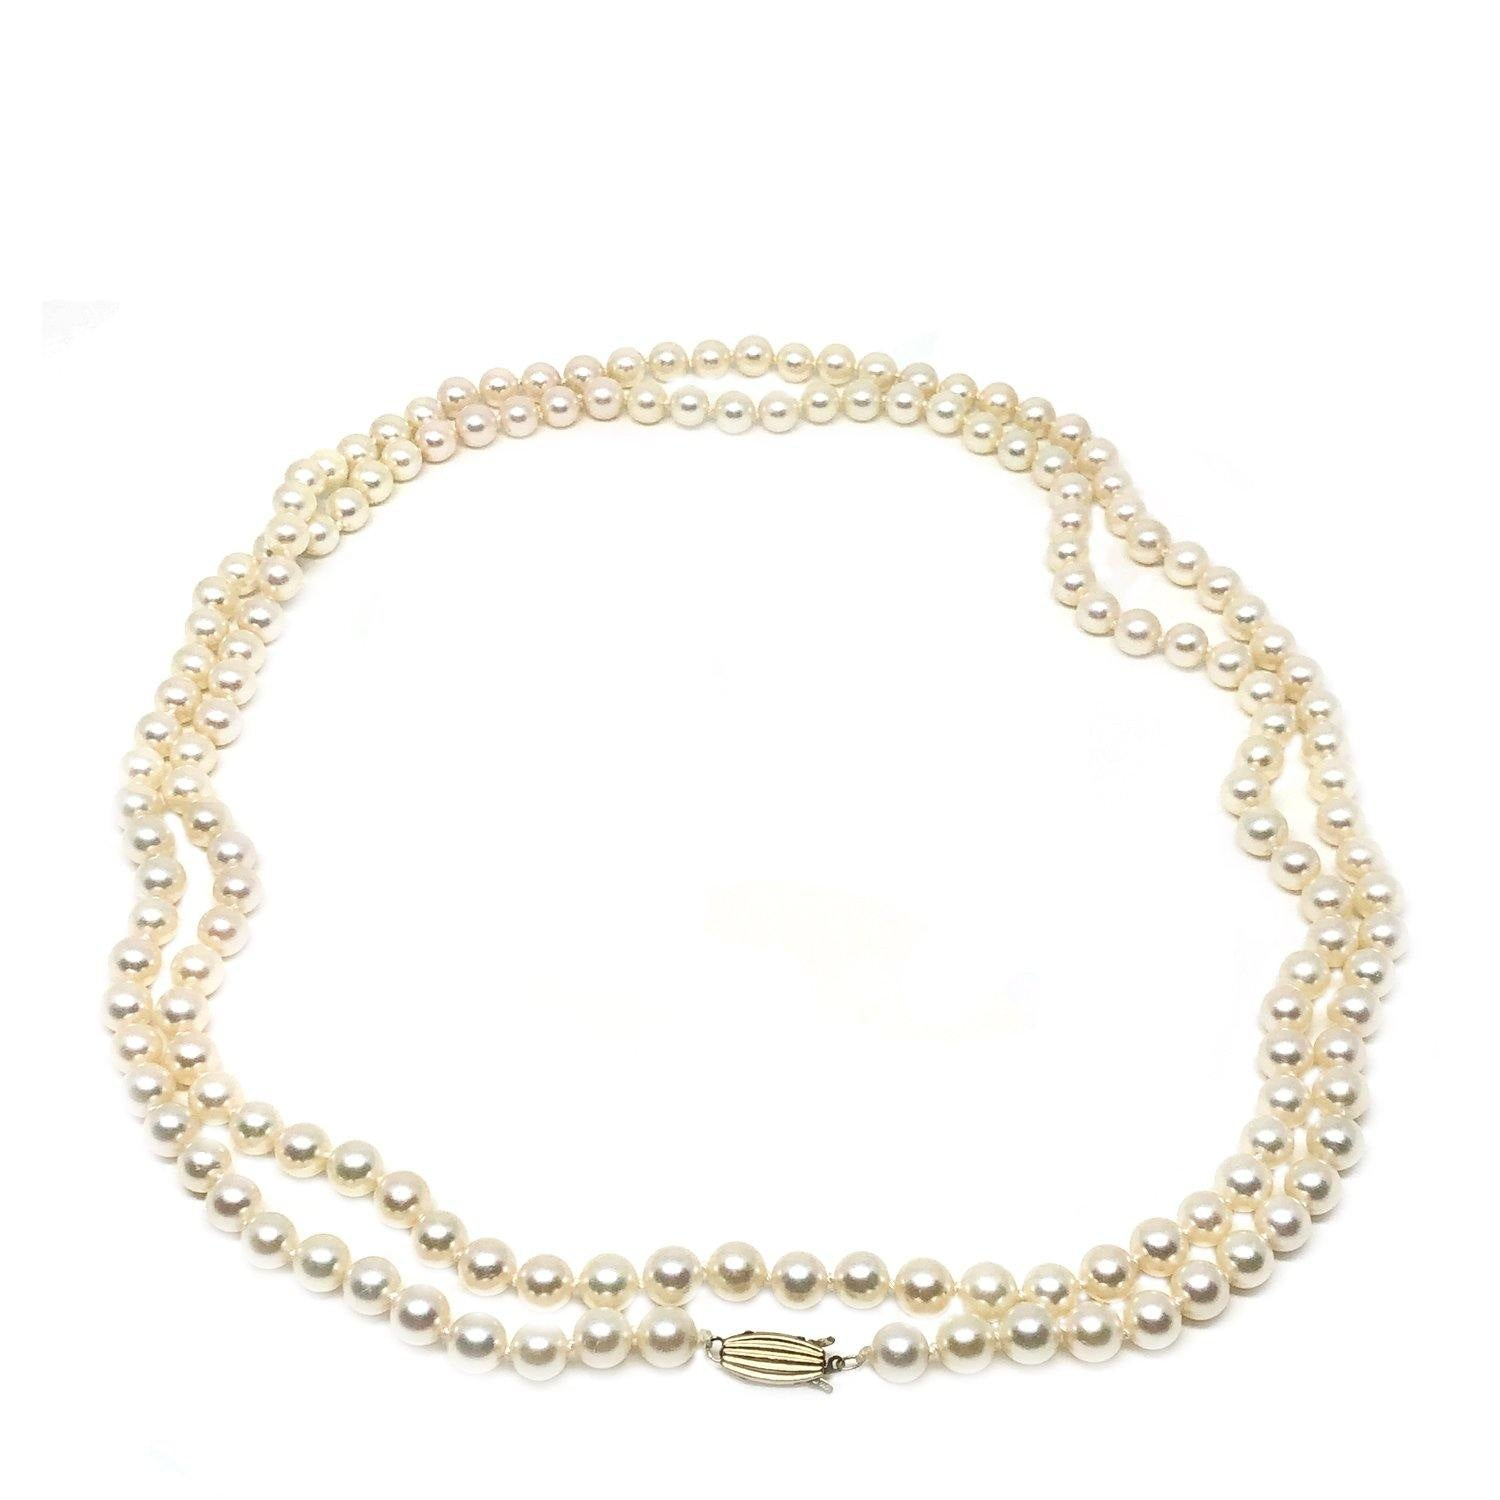 Mikimoto Blue Lagoon Japanese Cultured Akoya Pearl Strand - 14K Yellow Gold 49 Inch